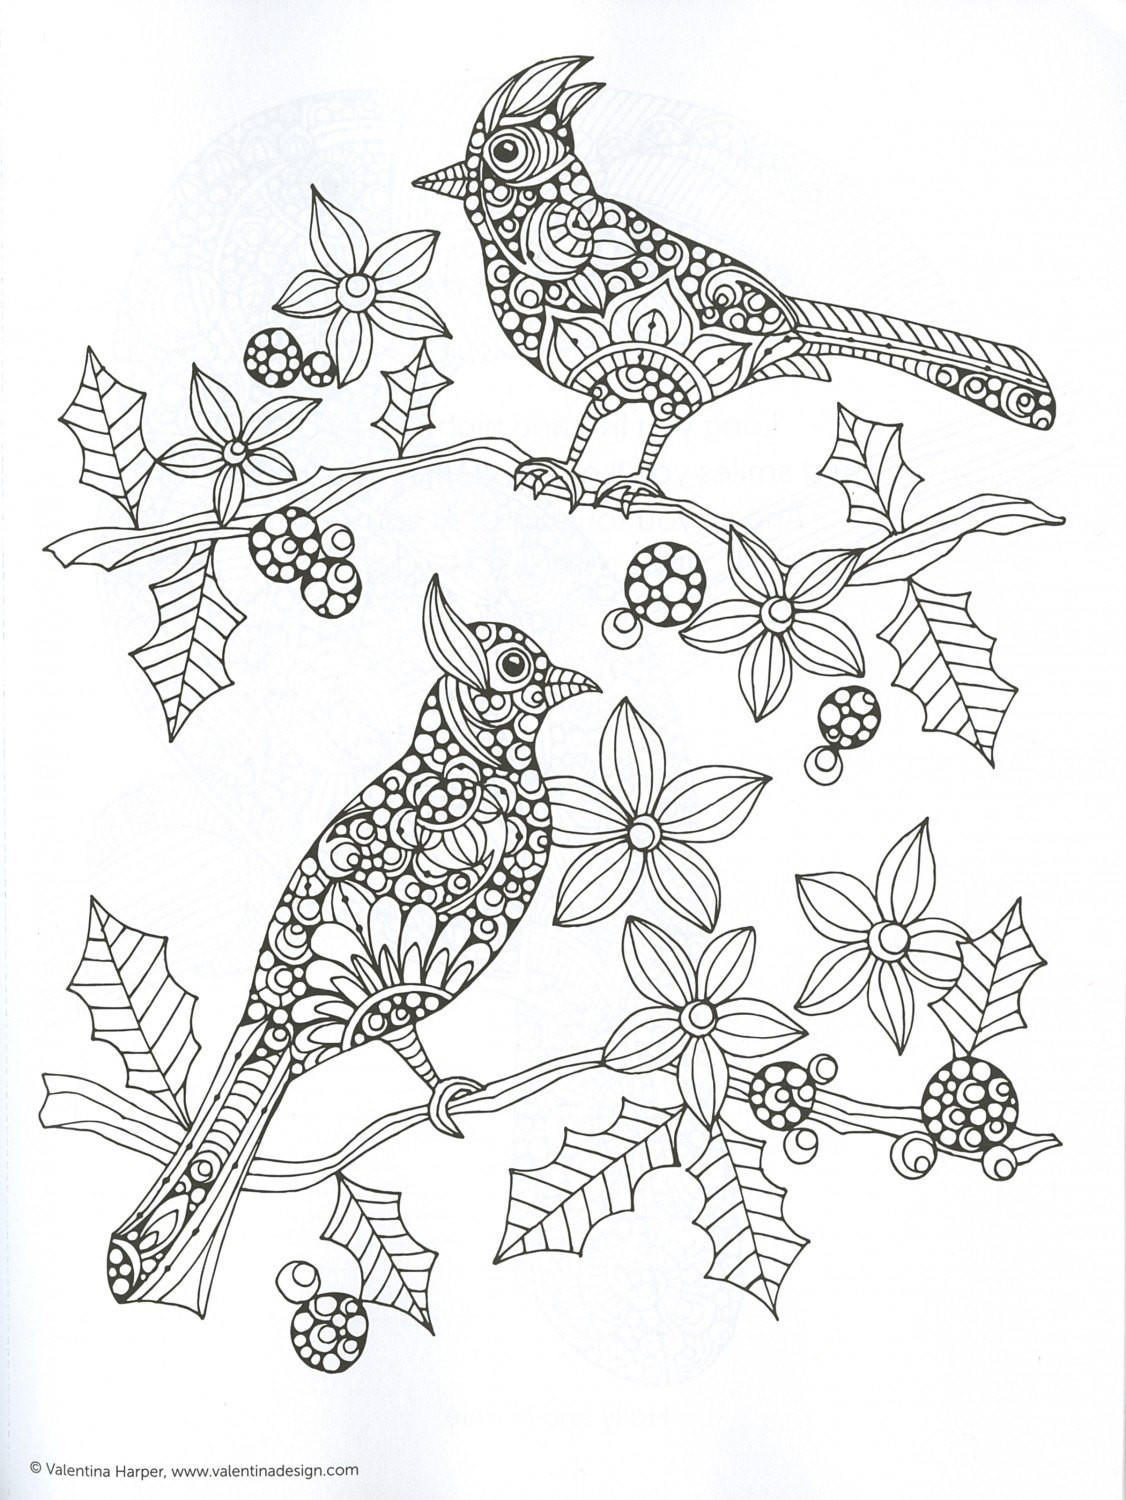 full_size creative coloring birds adult coloring from kay's crochet on creative coloring birds